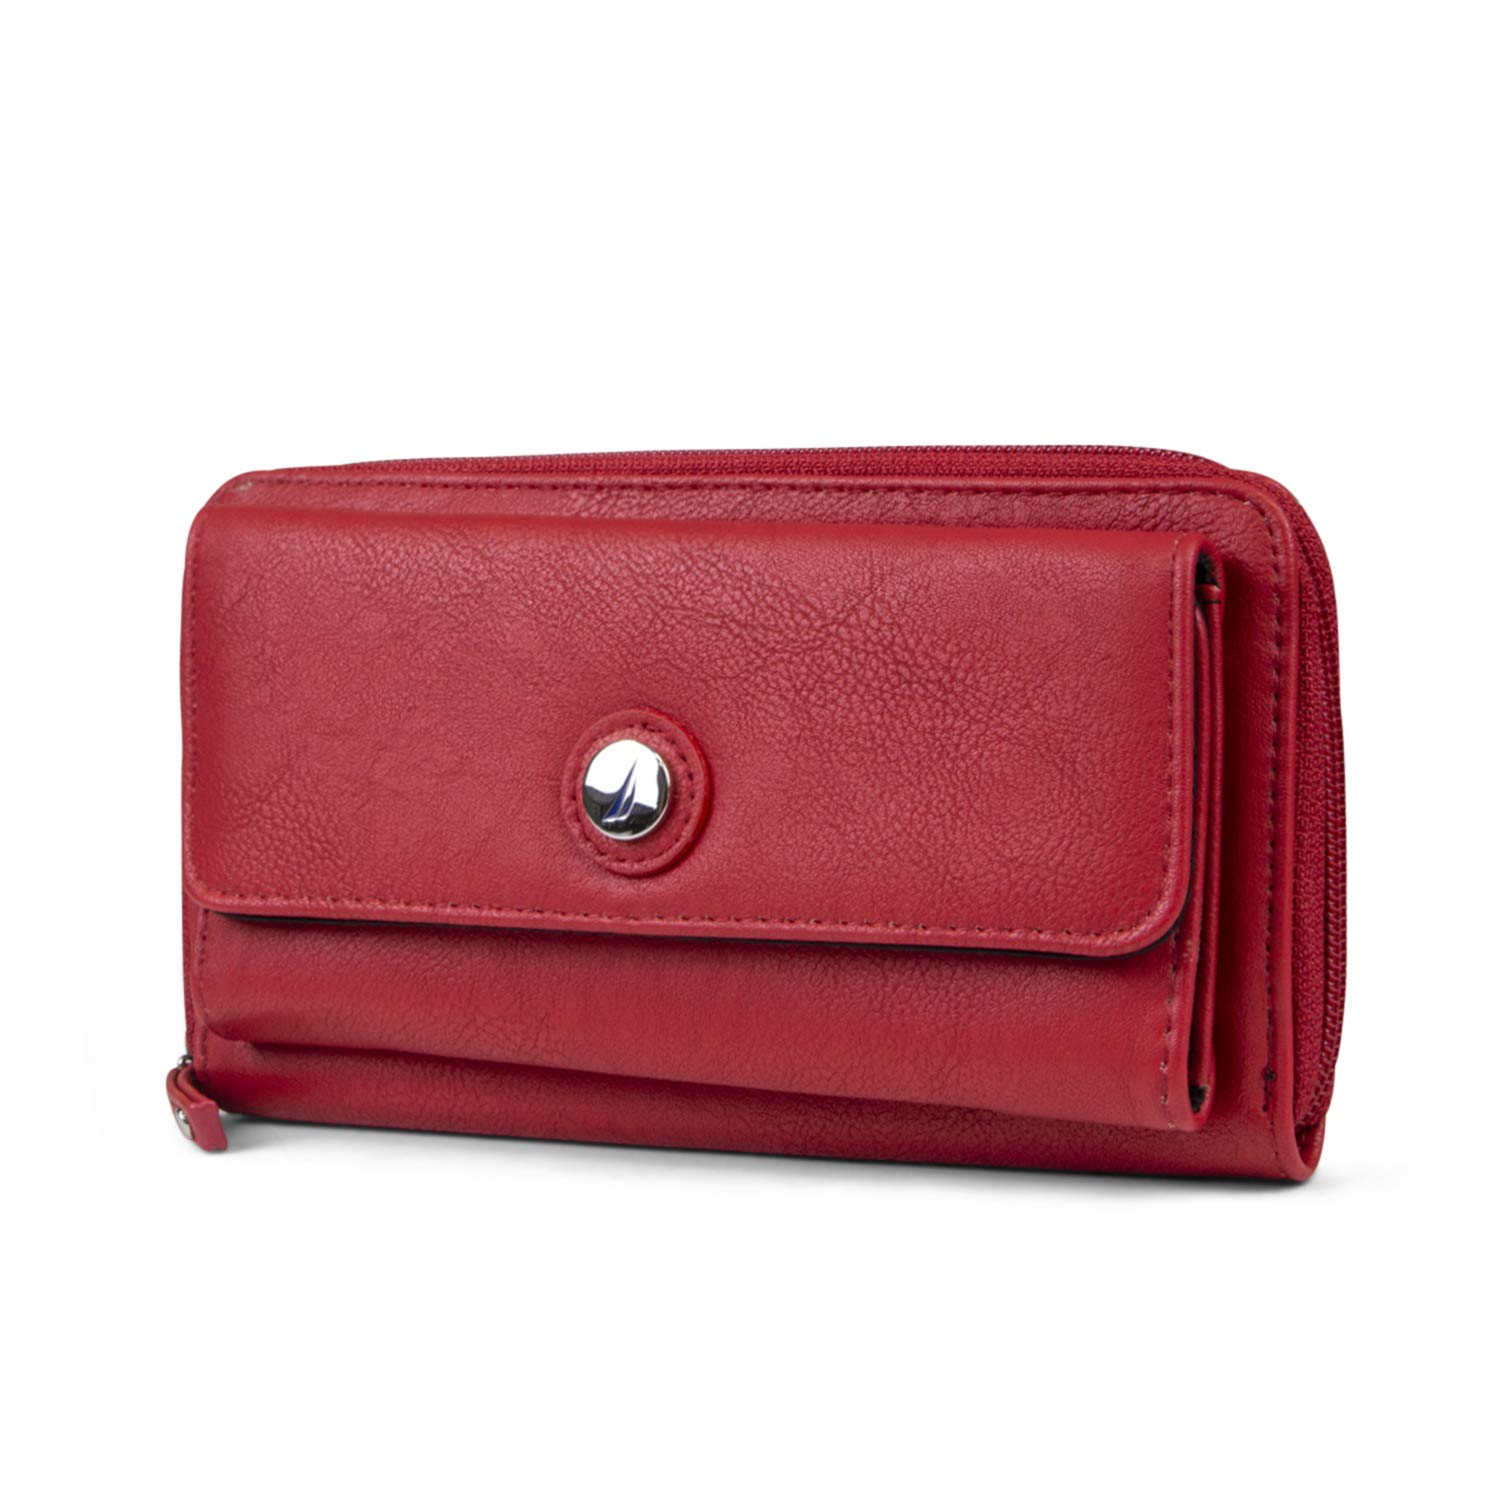 Nautica Bulk Cargo Womens RFID Wallet Clutch Zip Around Organizer (Fuego Red) by Nautica